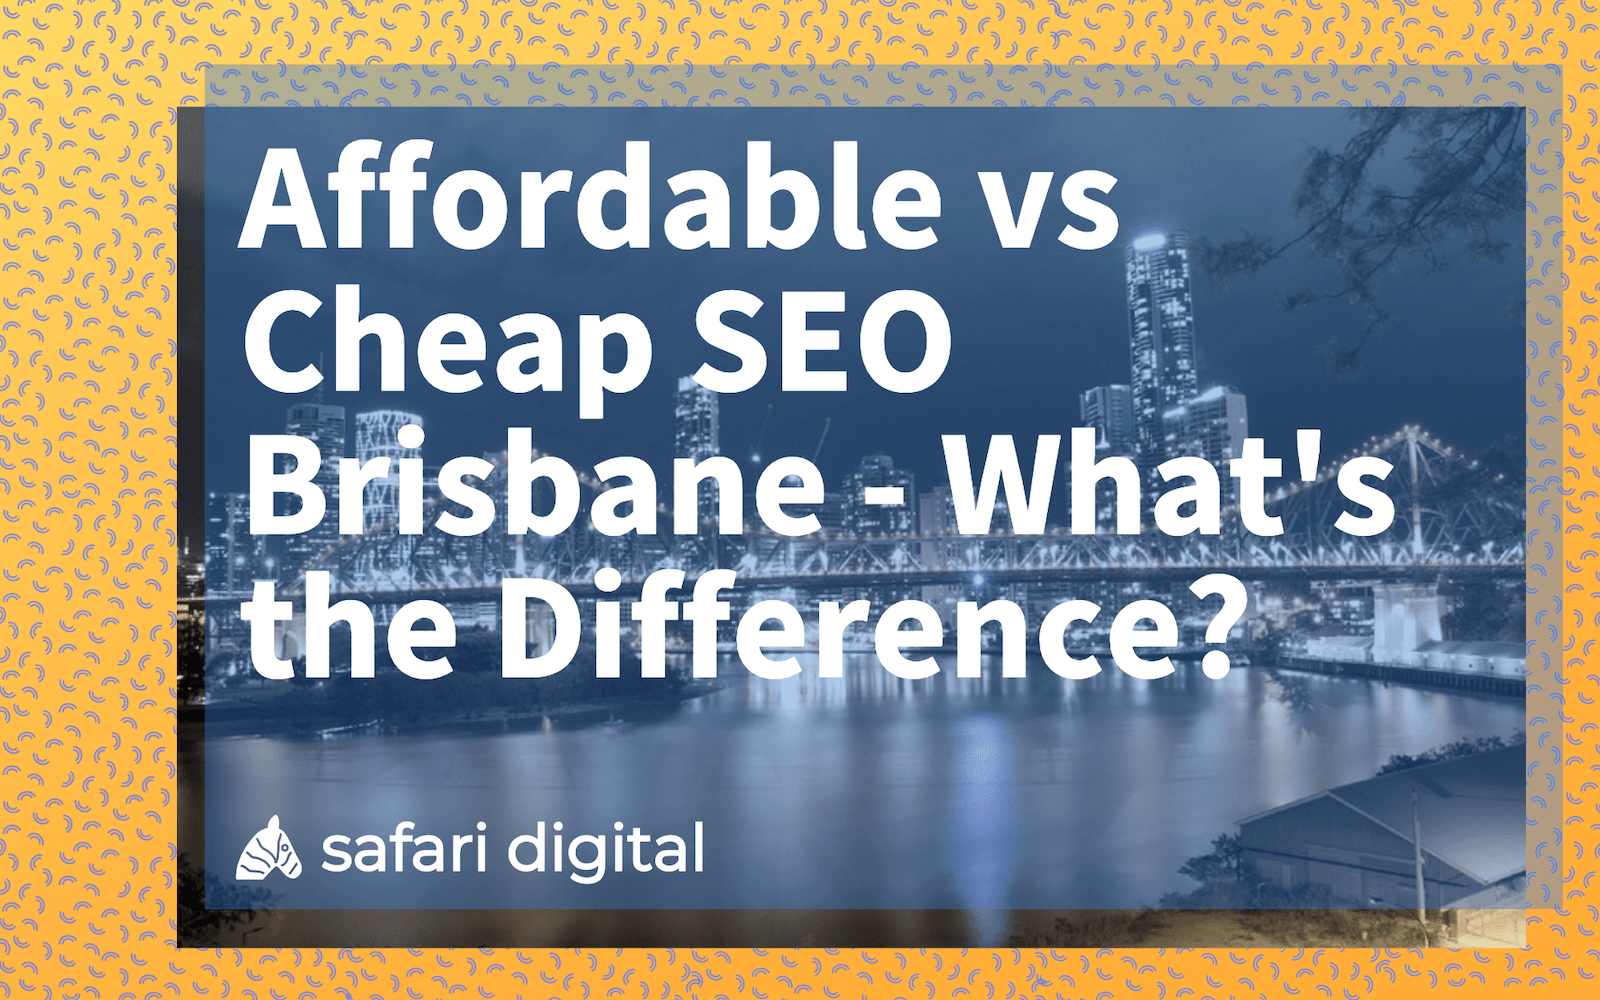 Cheap SEO Brisbane vs. Affordable SEO Brisbane - large cover image